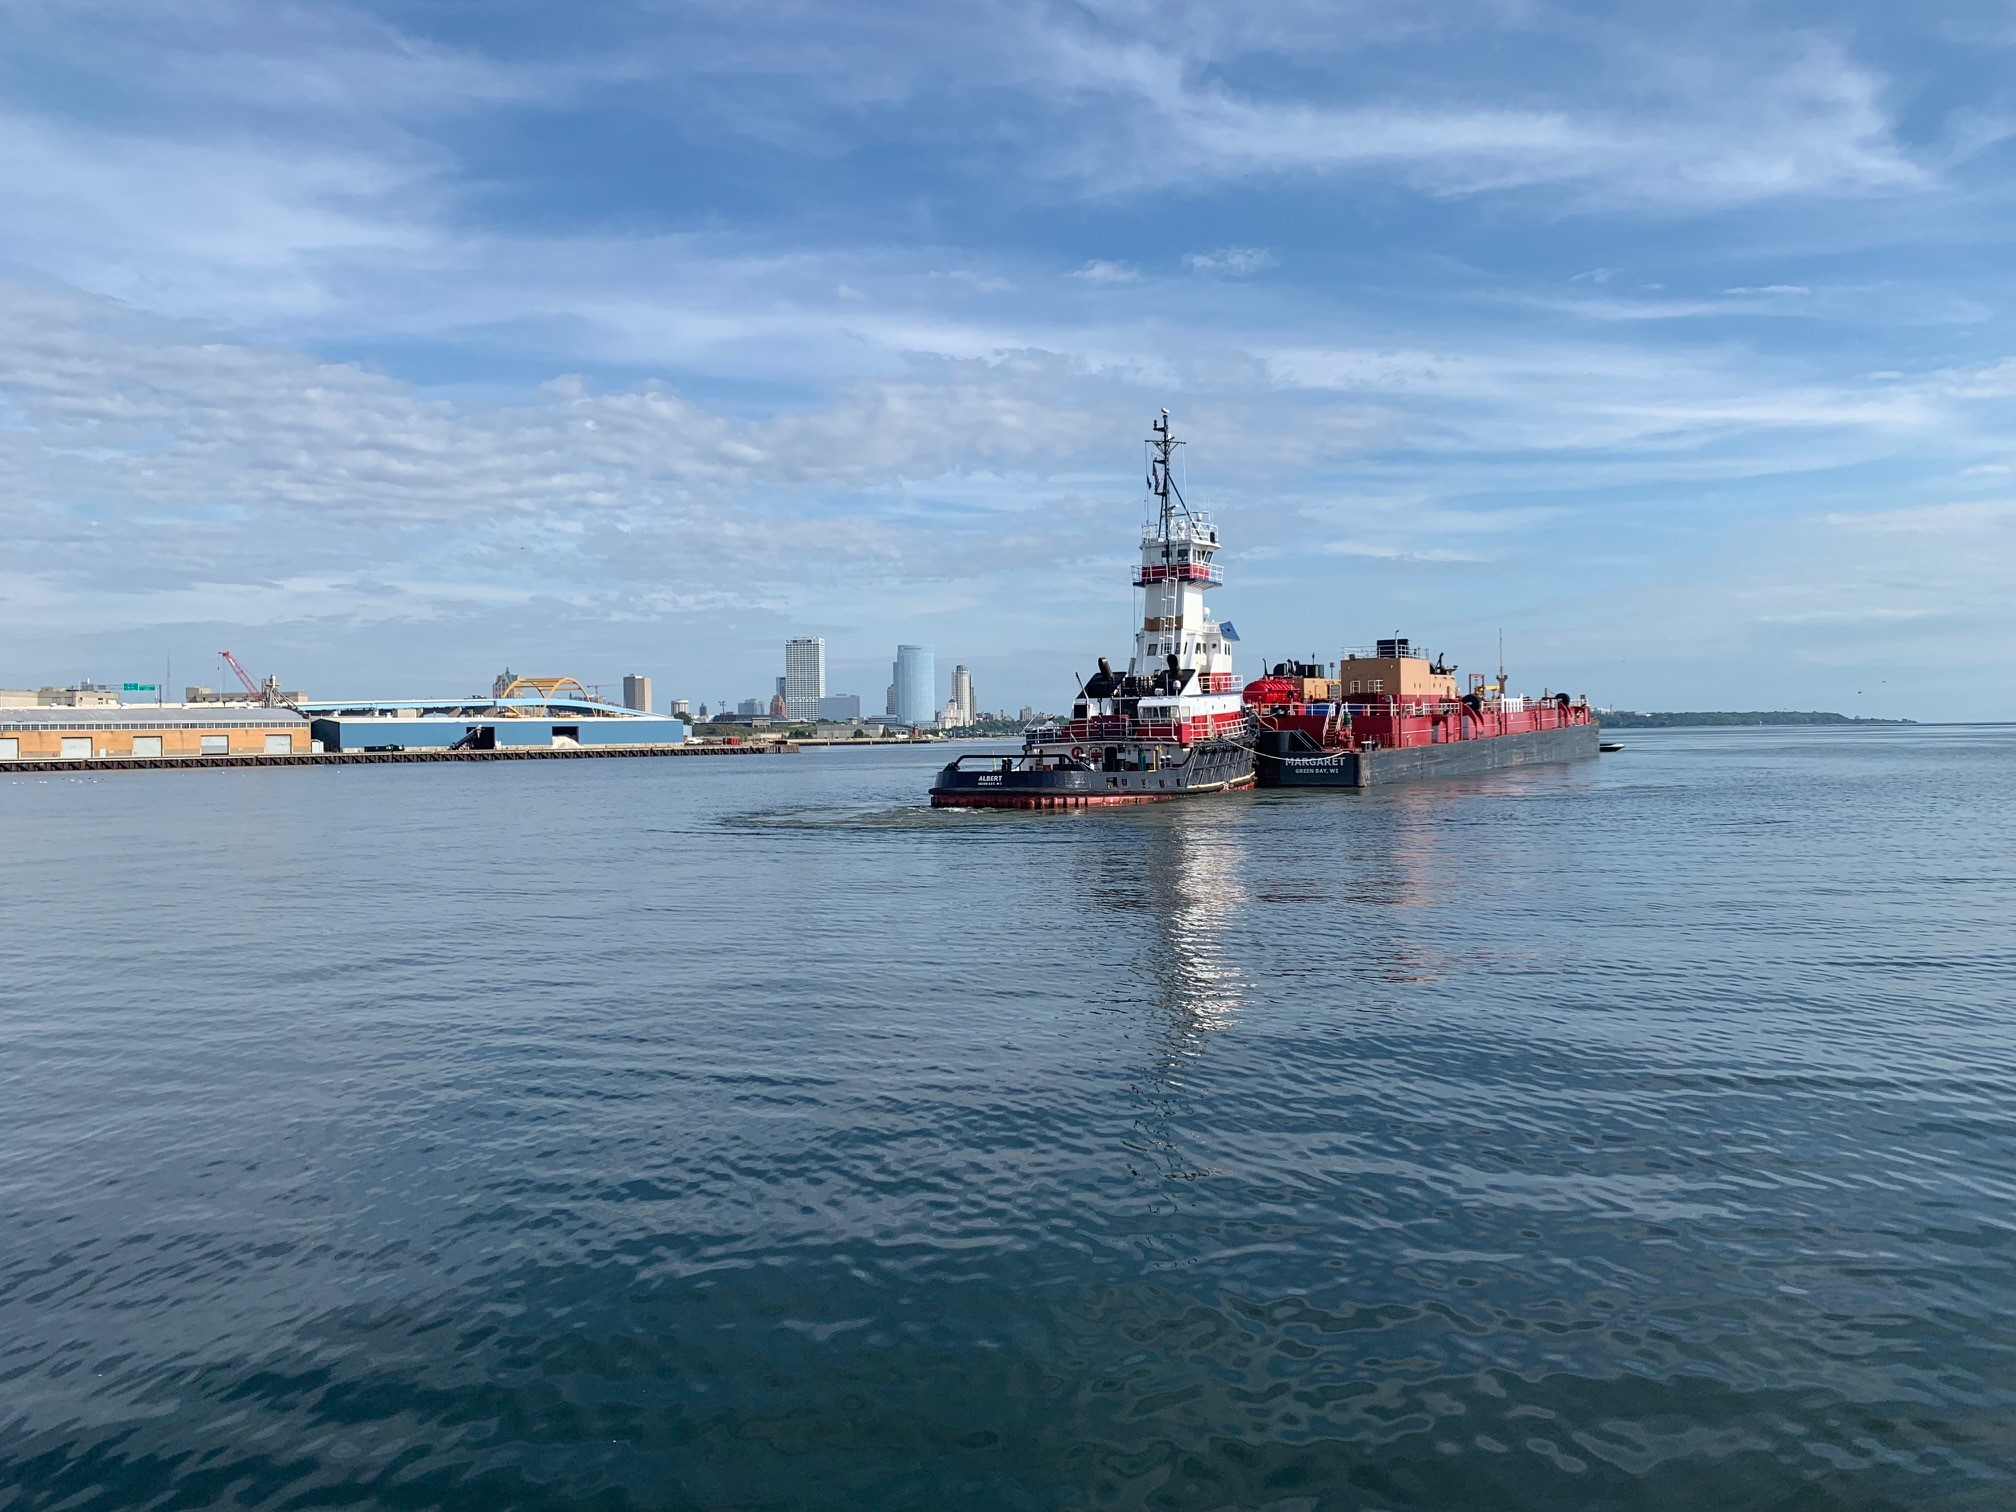 The tug/barge Albert/Margaret exports 20,000 tons of Wisconsin-produced ethanol from Port Milwaukee to Quebec on Sunday, August 11, 2019. Port Milwaukee's liquid bulk pier re-entered service in 2018 following a comprehensive refurbishment. Photo from the Port Milwaukee.